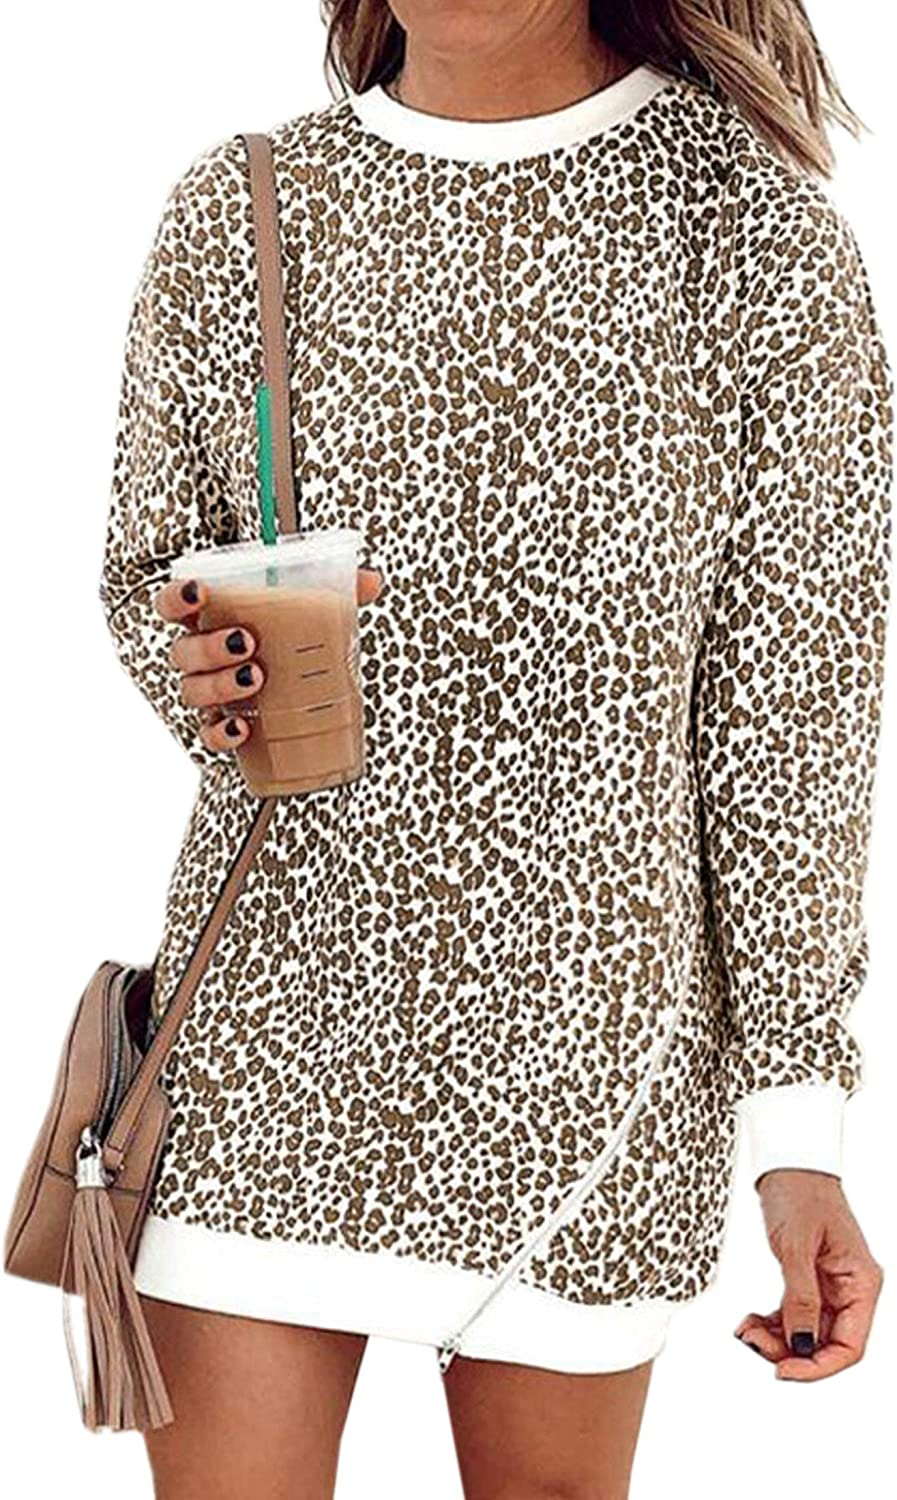 Womens Stretchy Soft Feel Casual Baggy Tunic Dress Animal Leopard Print 10-18